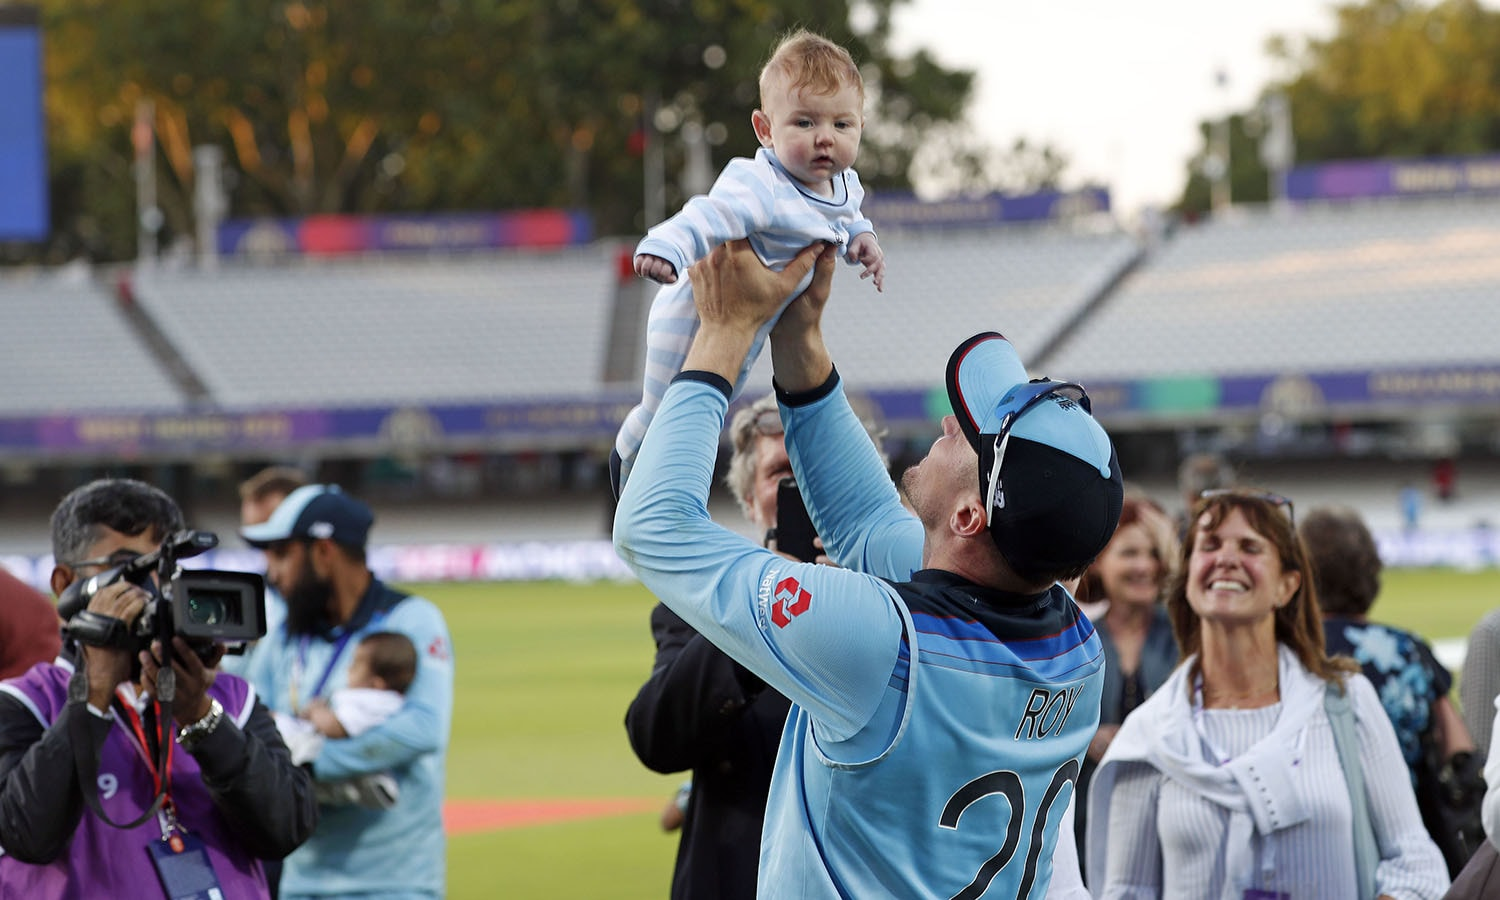 Jason Roy holds up a baby after winning the Cricket World Cup final match between England and New Zealand at Lord's. — AP